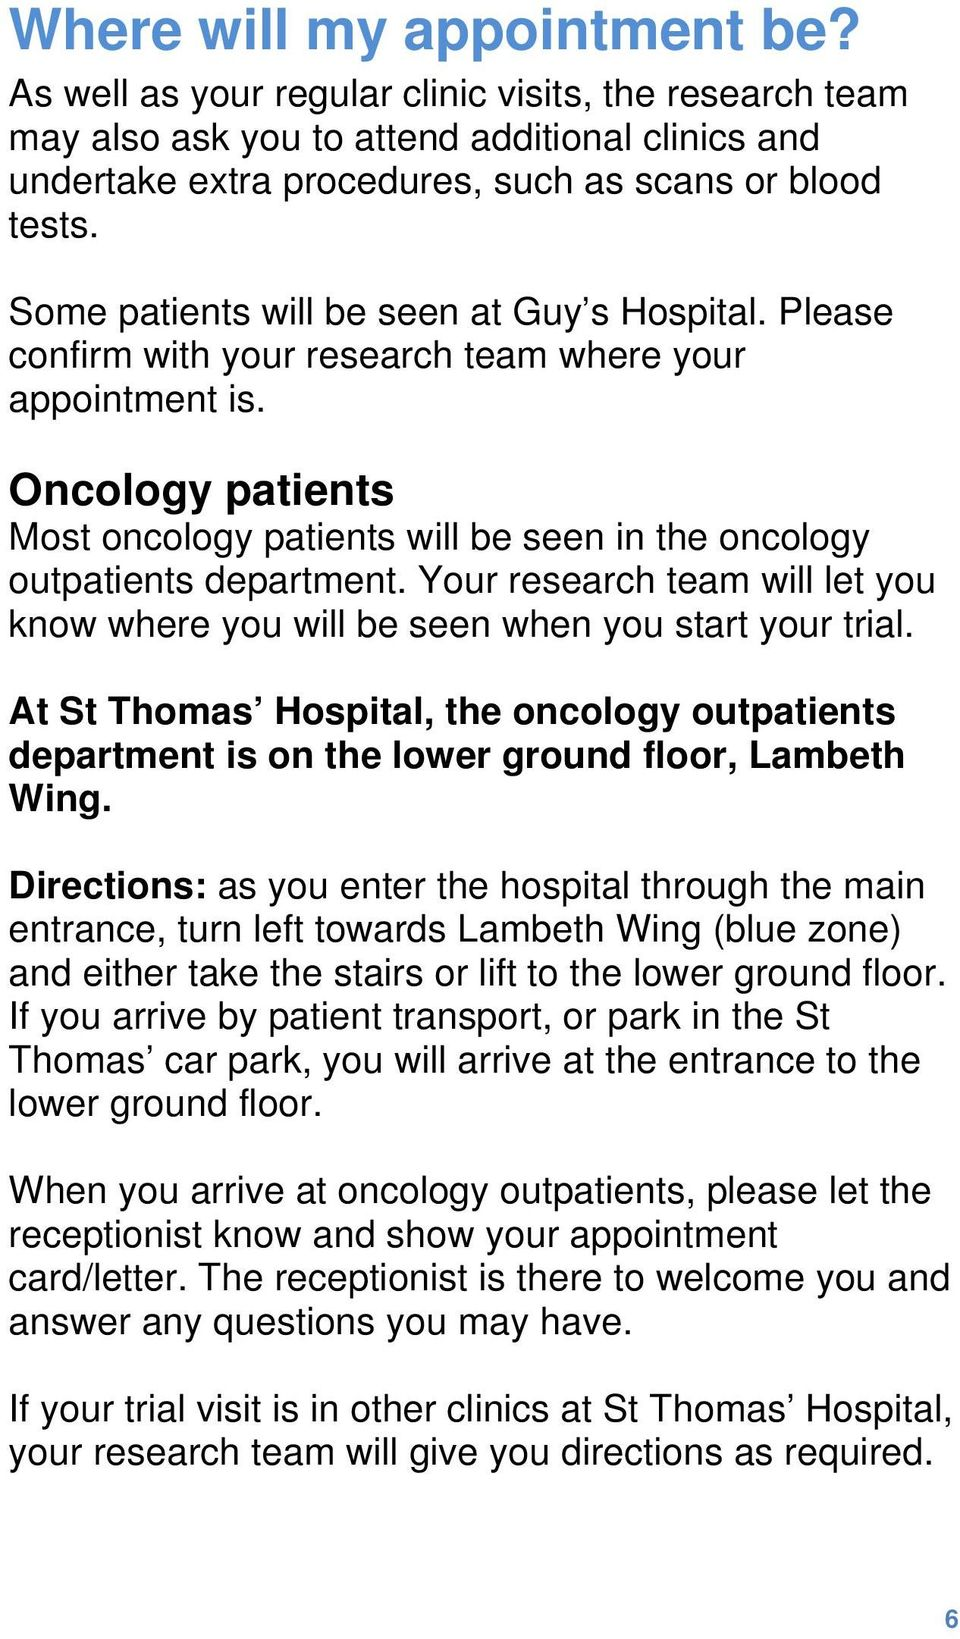 Oncology patients Most oncology patients will be seen in the oncology outpatients department. Your research team will let you know where you will be seen when you start your trial.